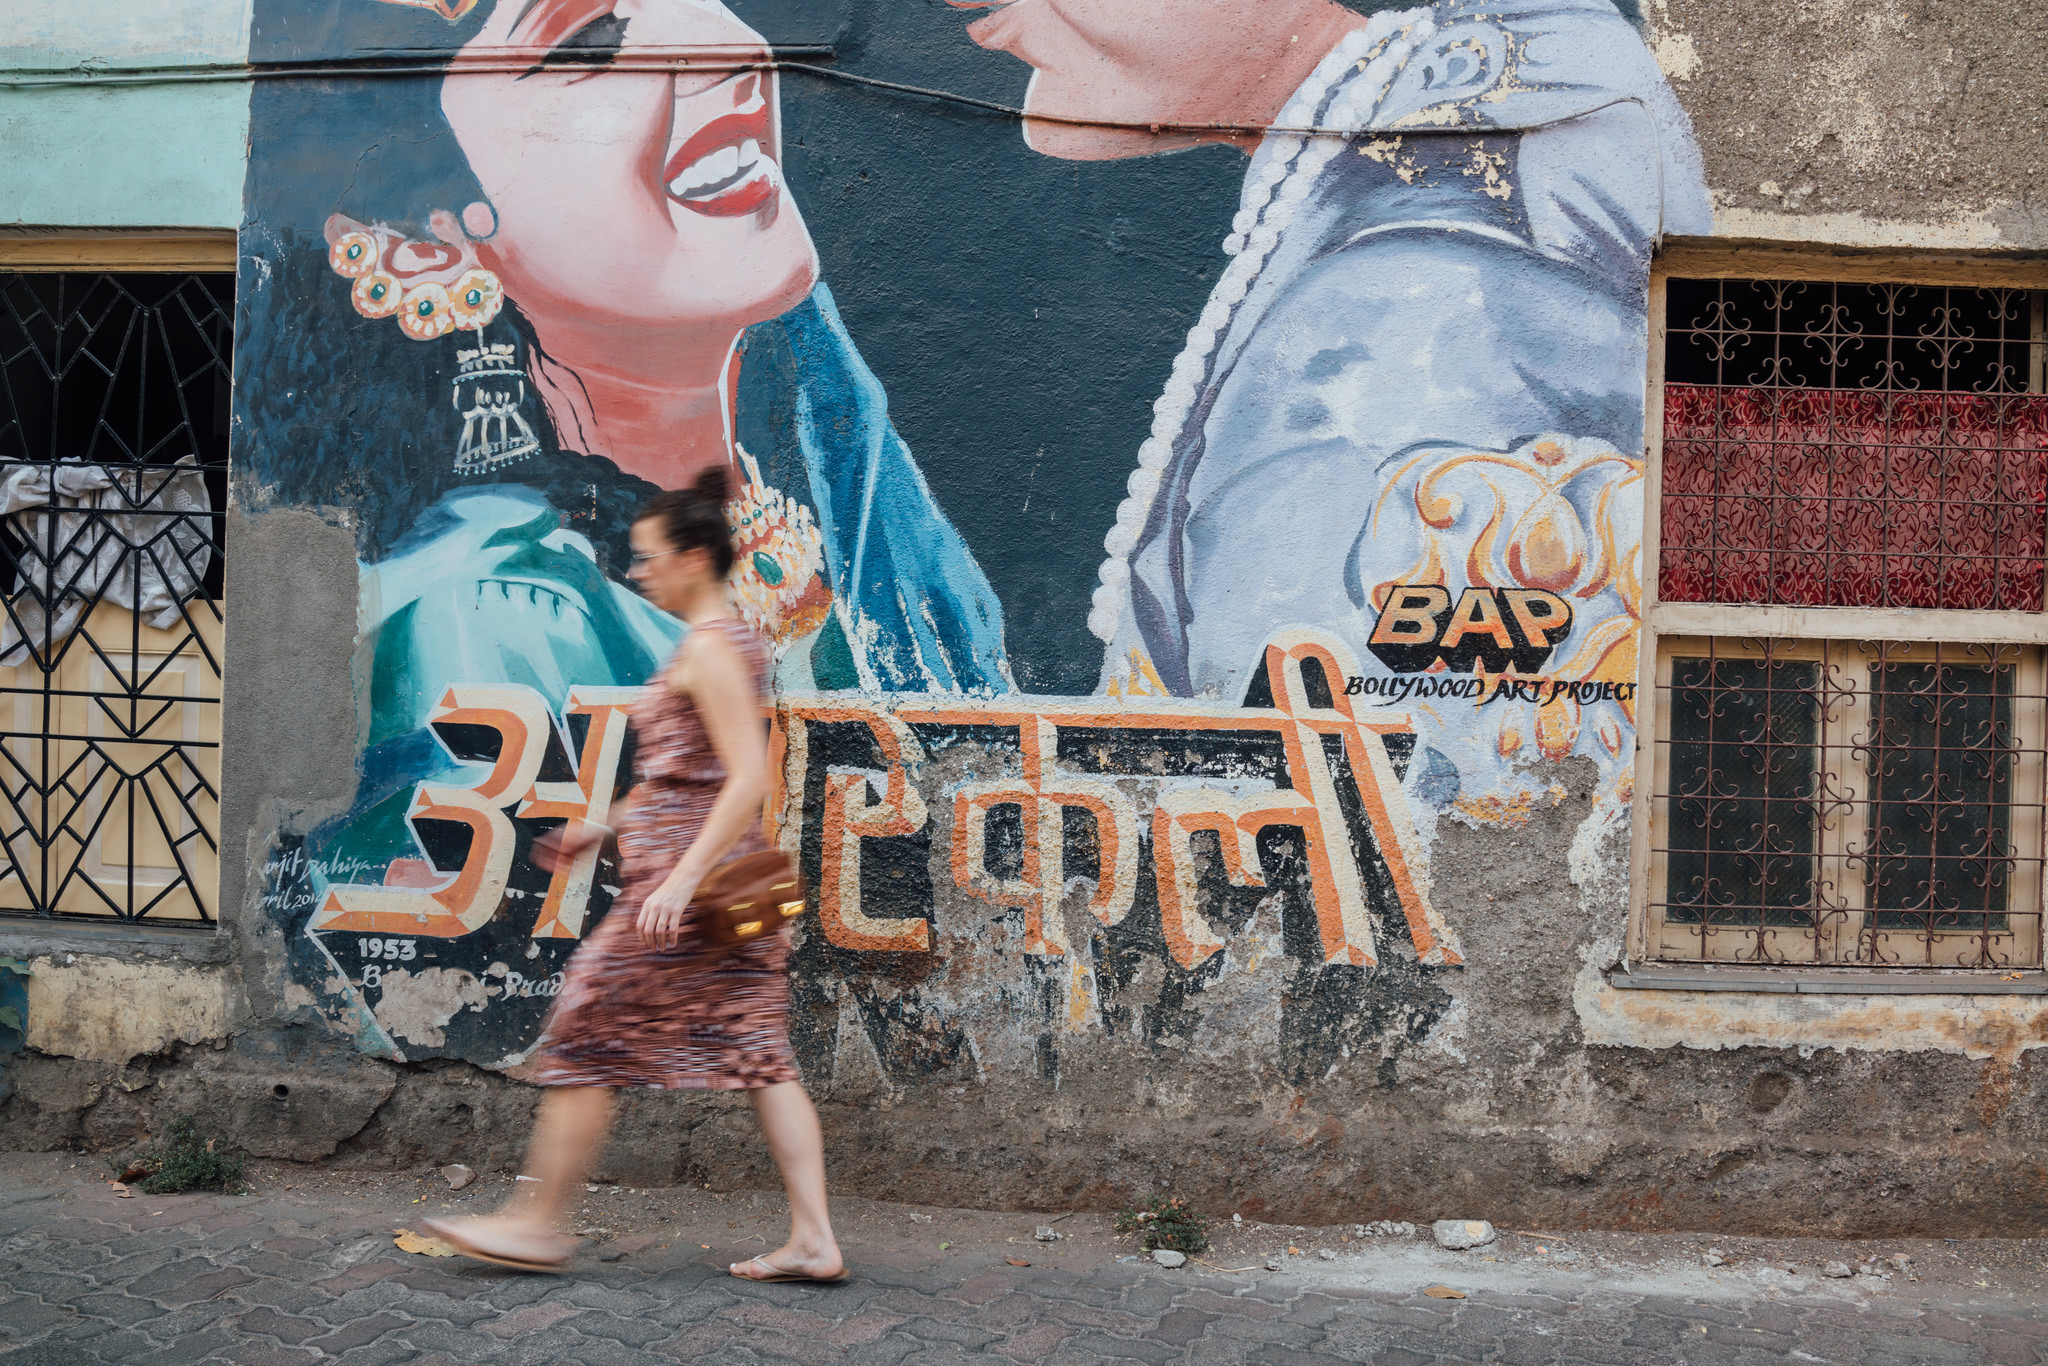 The streets of Bandra in Mumbai, India